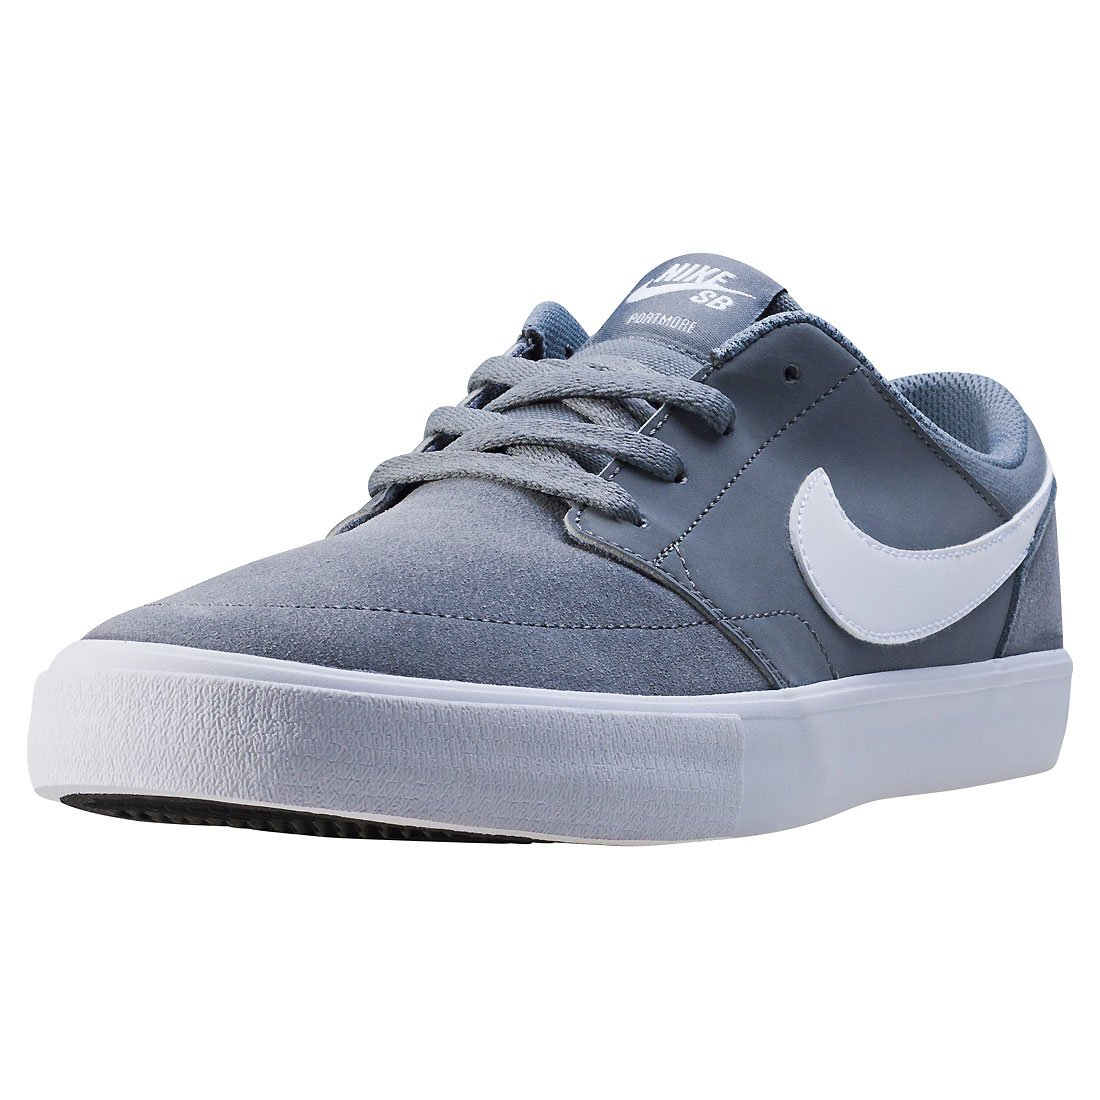 NIKE Men's Sb Portmore Ii Solar Ankle-High Canvas Skateboarding Shoe B01K3II3UW 10 D(M) US|Cool Grey White Black